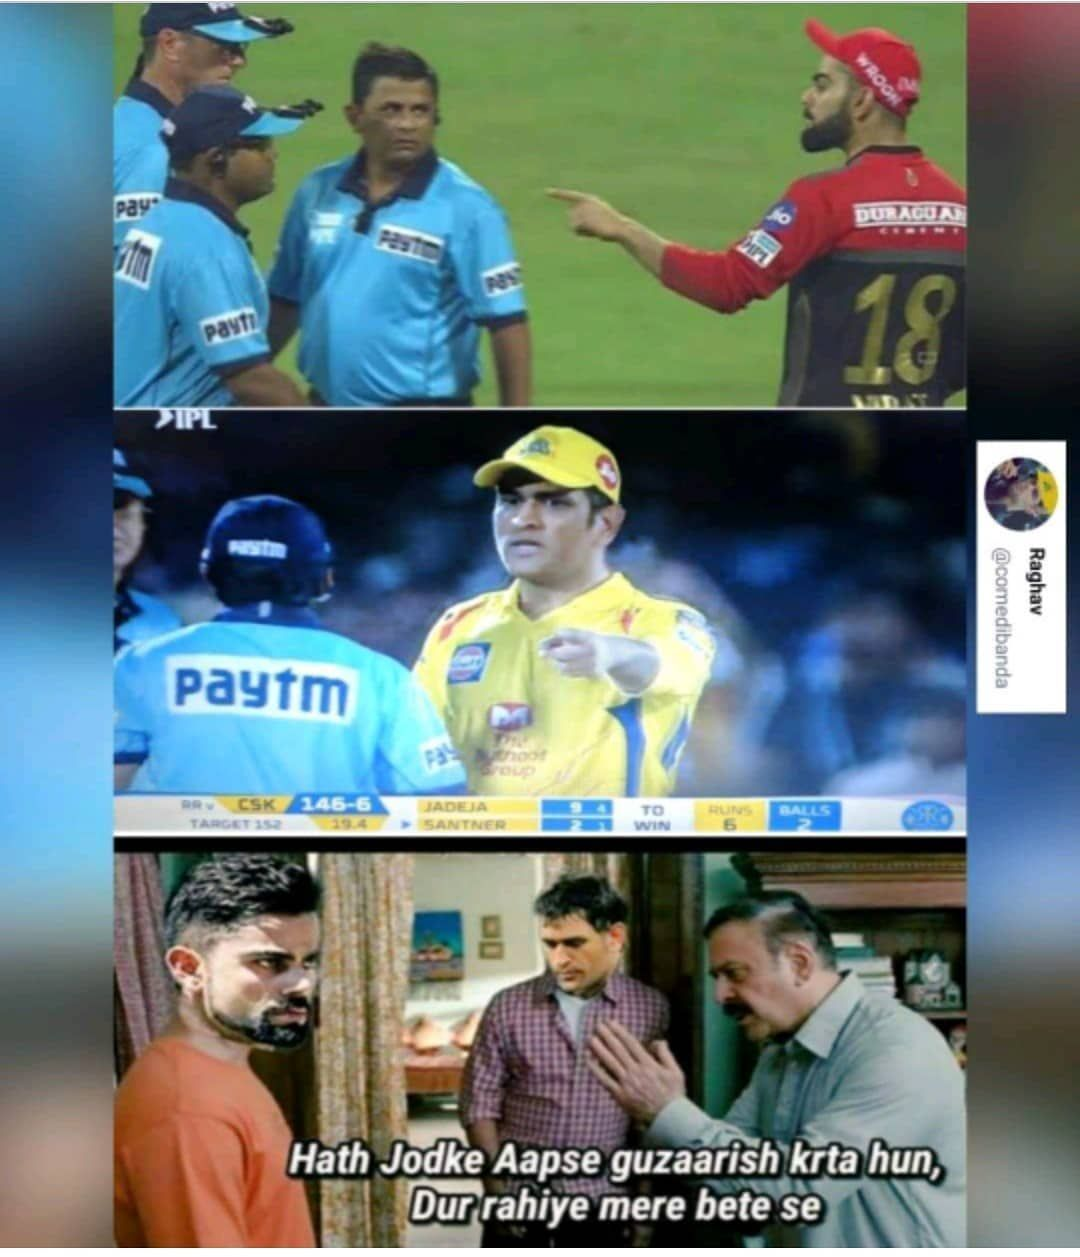 Bigad Rhe Ho Follow Crichood For Bigad Rhe Ho Follow Crichood For More Crichood Ipl Dailymemes Cric India Cricket Team Funny Memes Cricket Sport